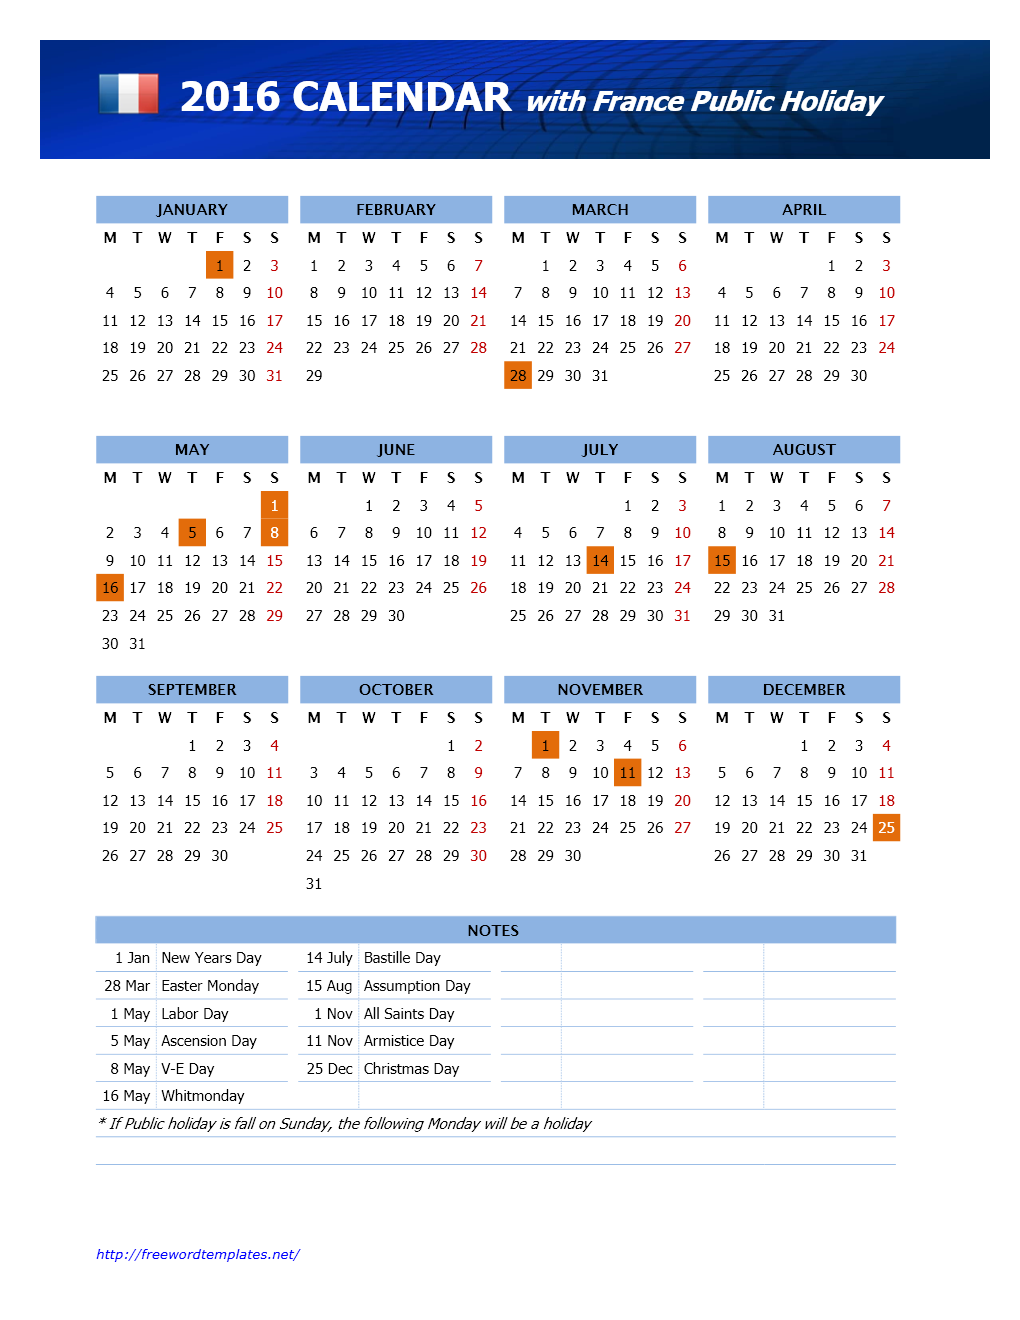 2016 France Public Holidays Calendar Template for Word